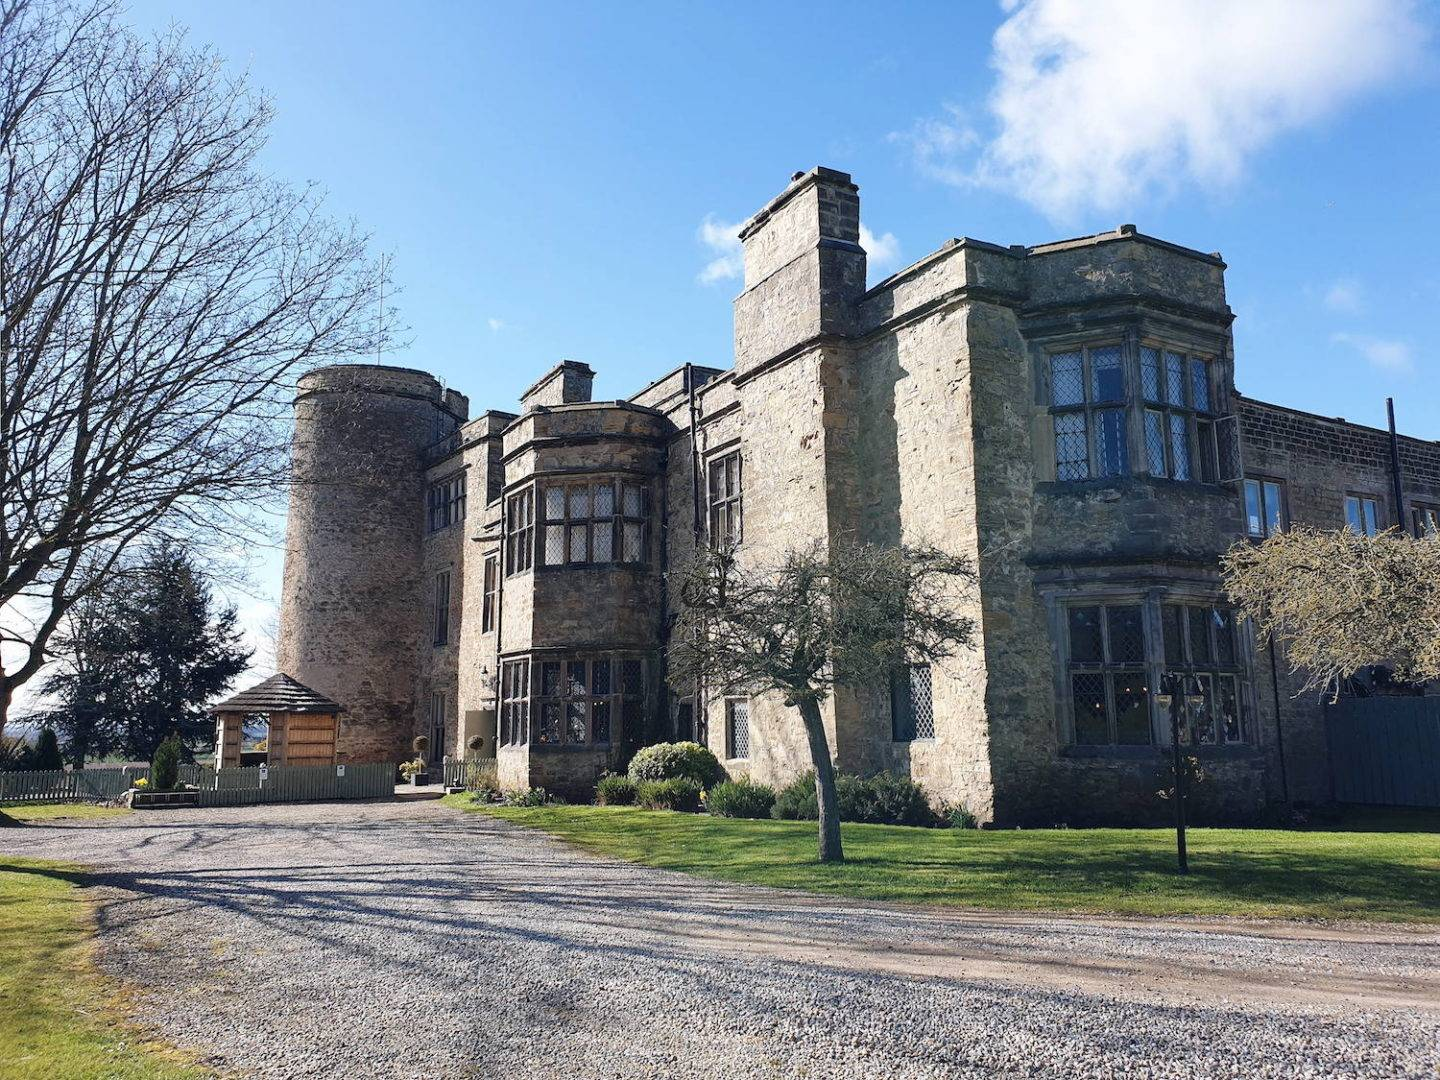 Full hotel review of Walworth Castle in England